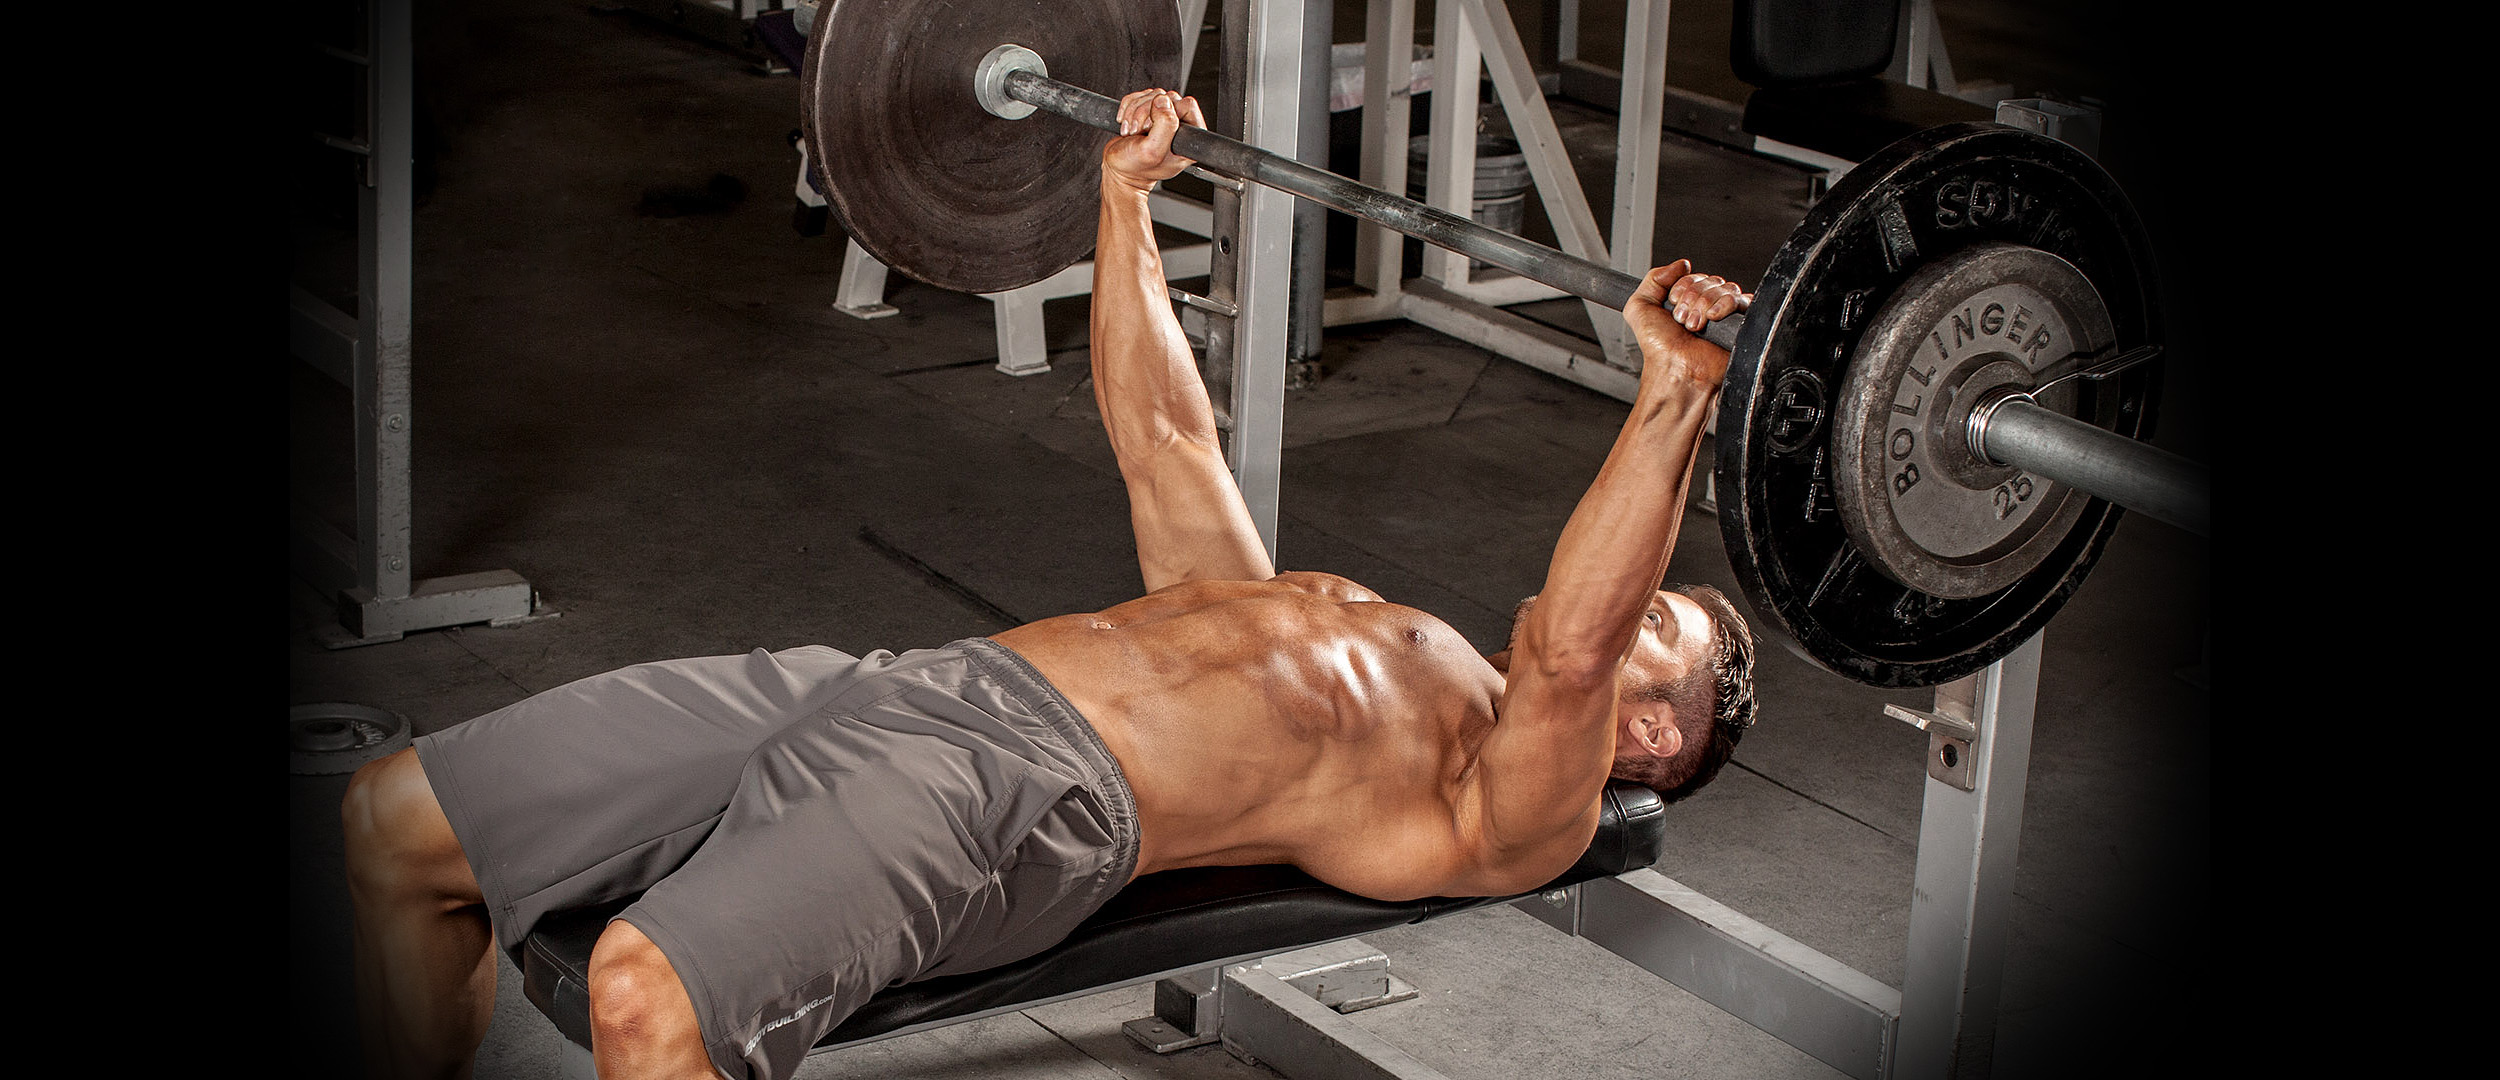 4 ways to improve your bench press picture